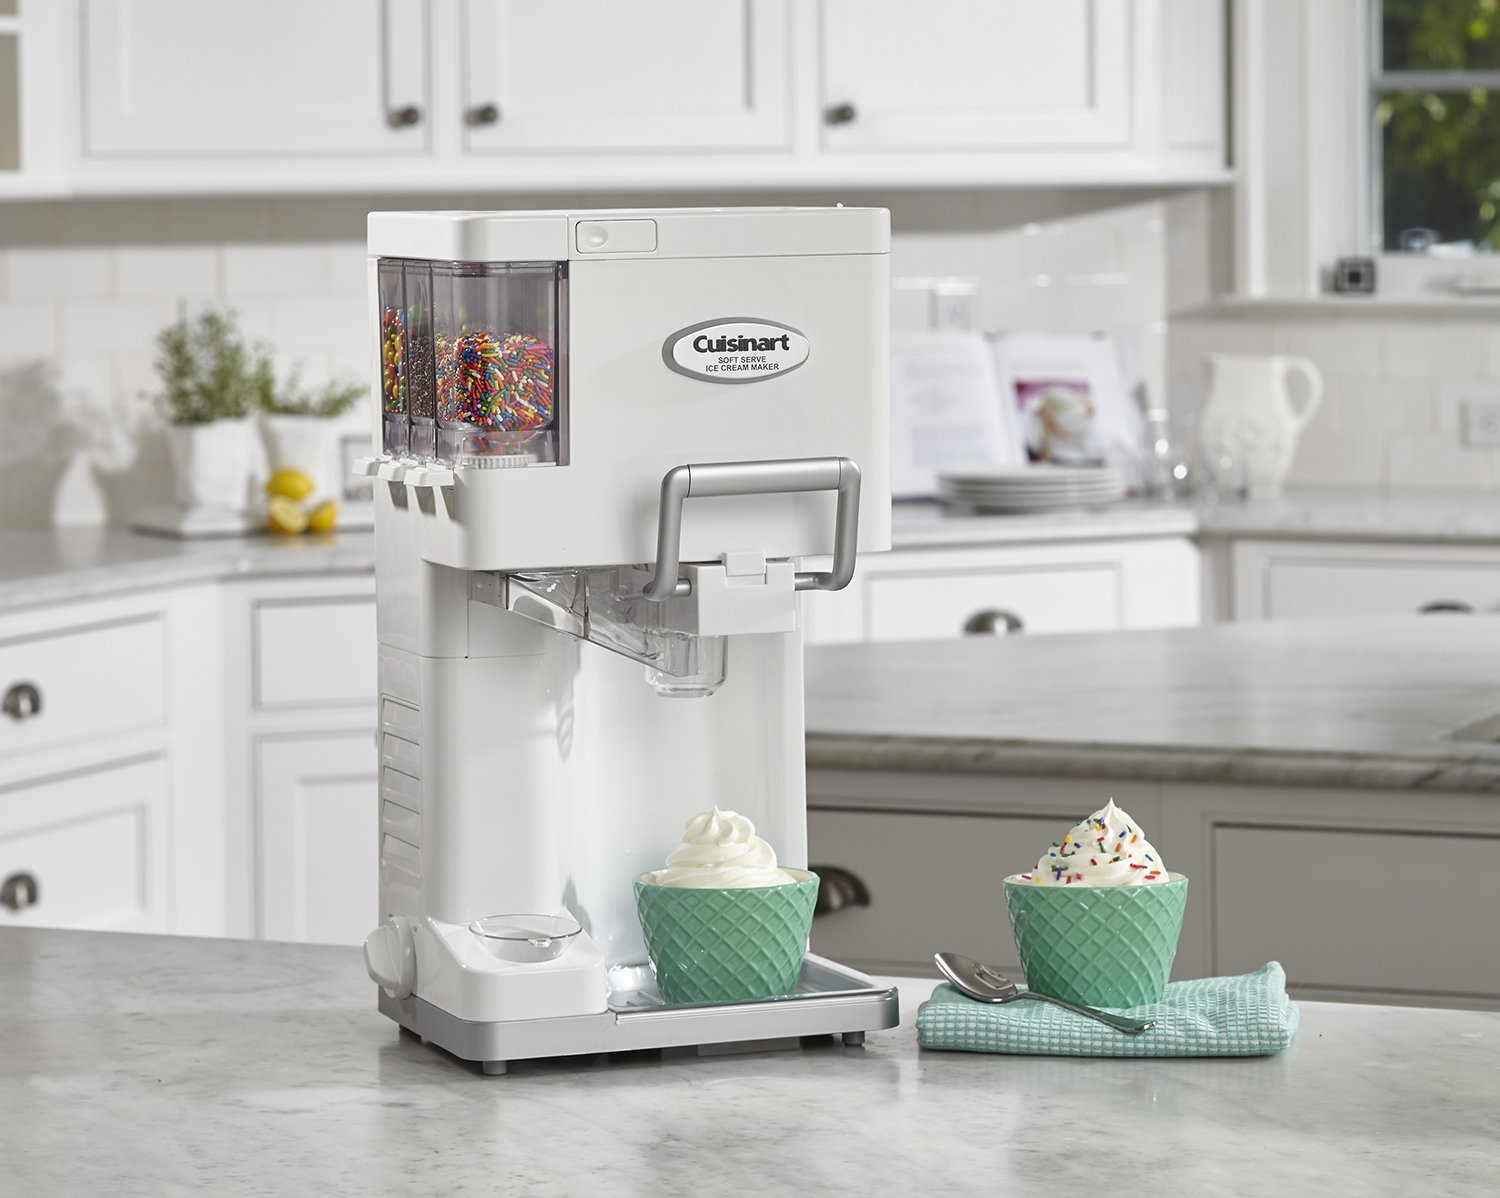 ice cream maker in kitchen